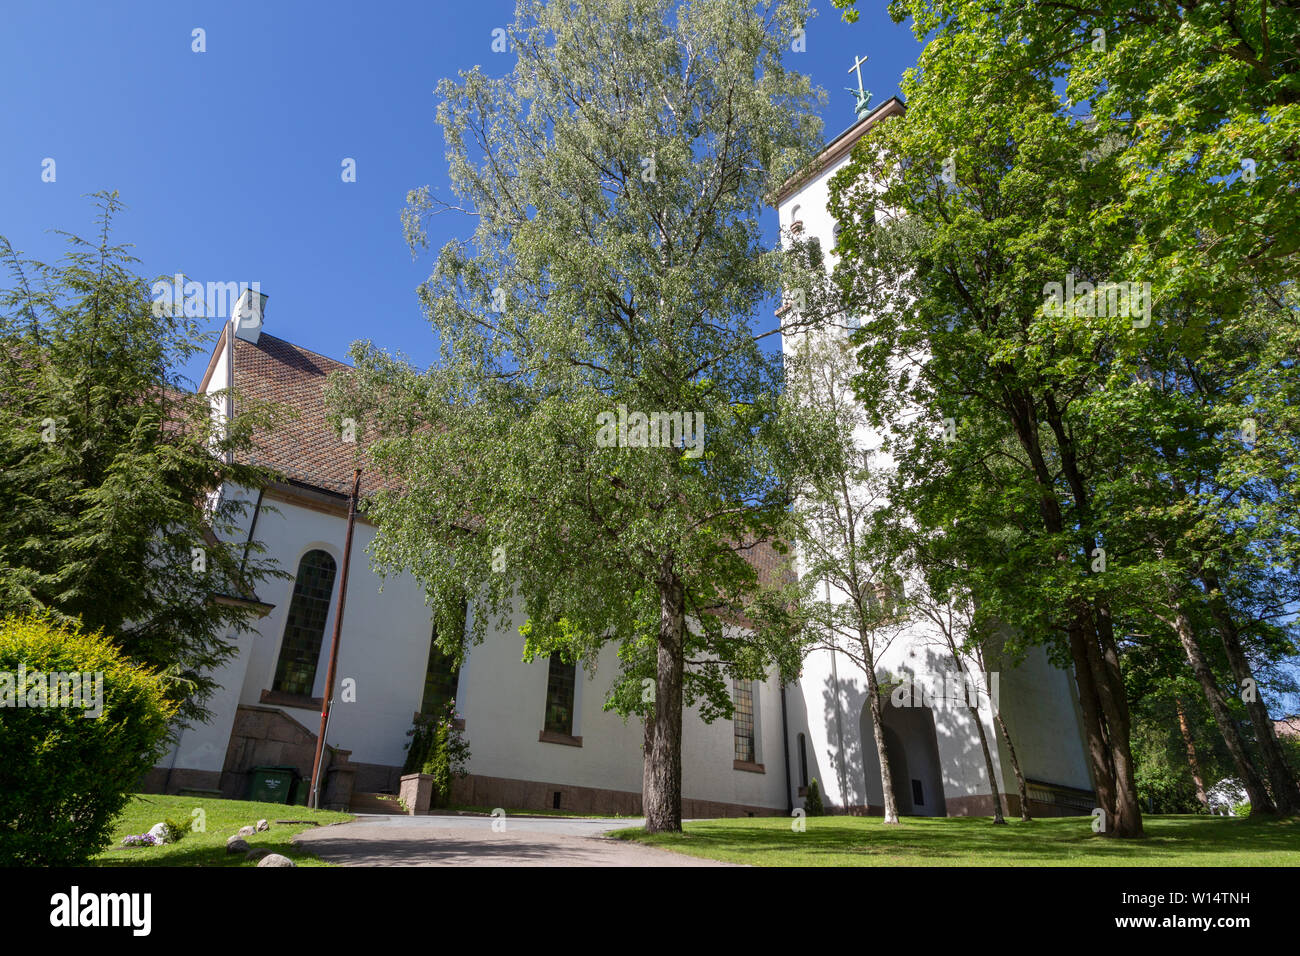 Ris Church in Olso, Norway - Stock Image